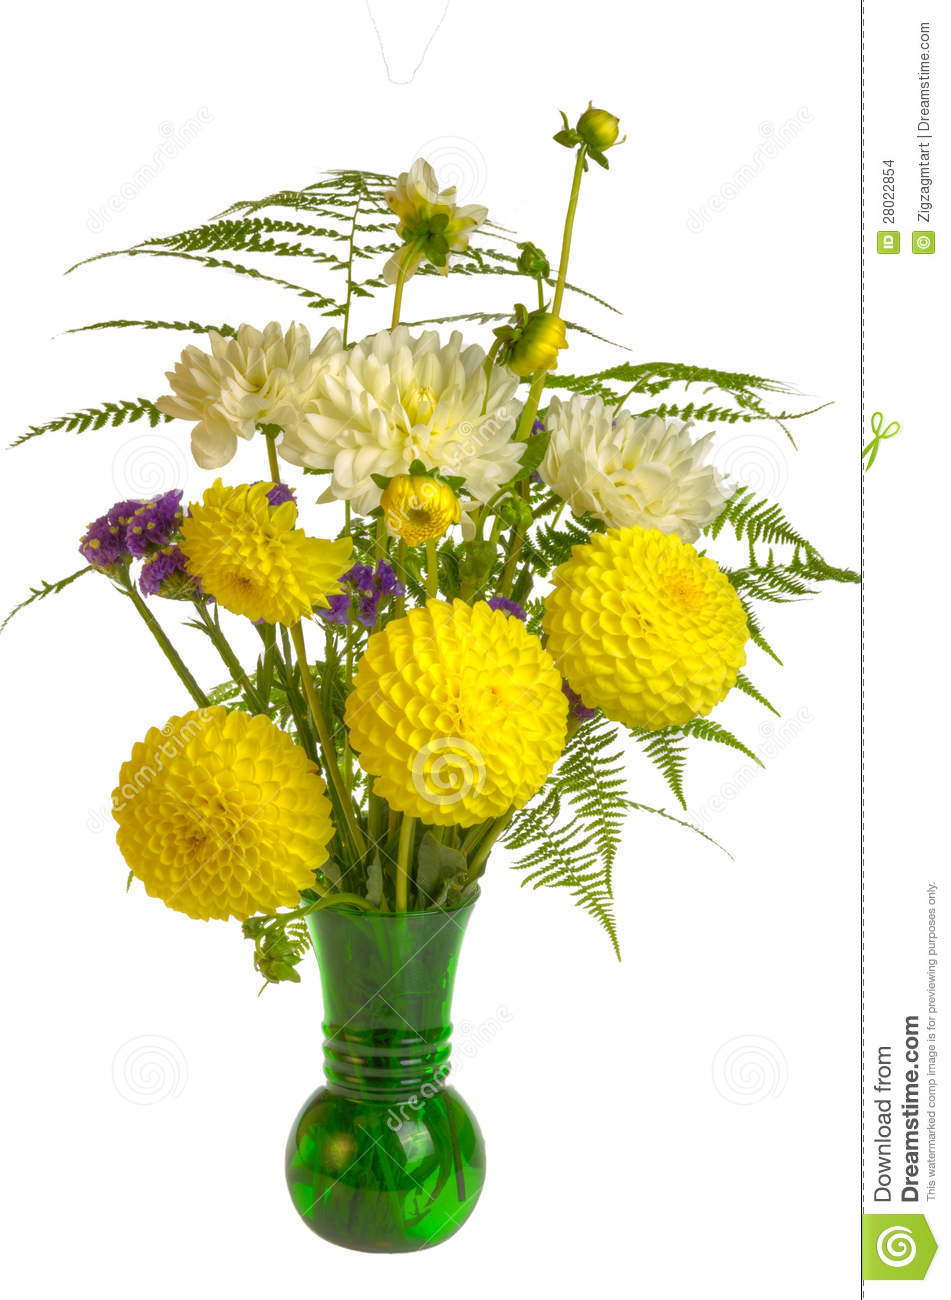 Flower Arrangement With Ferns And Yellow Flowers Stock Photo Image